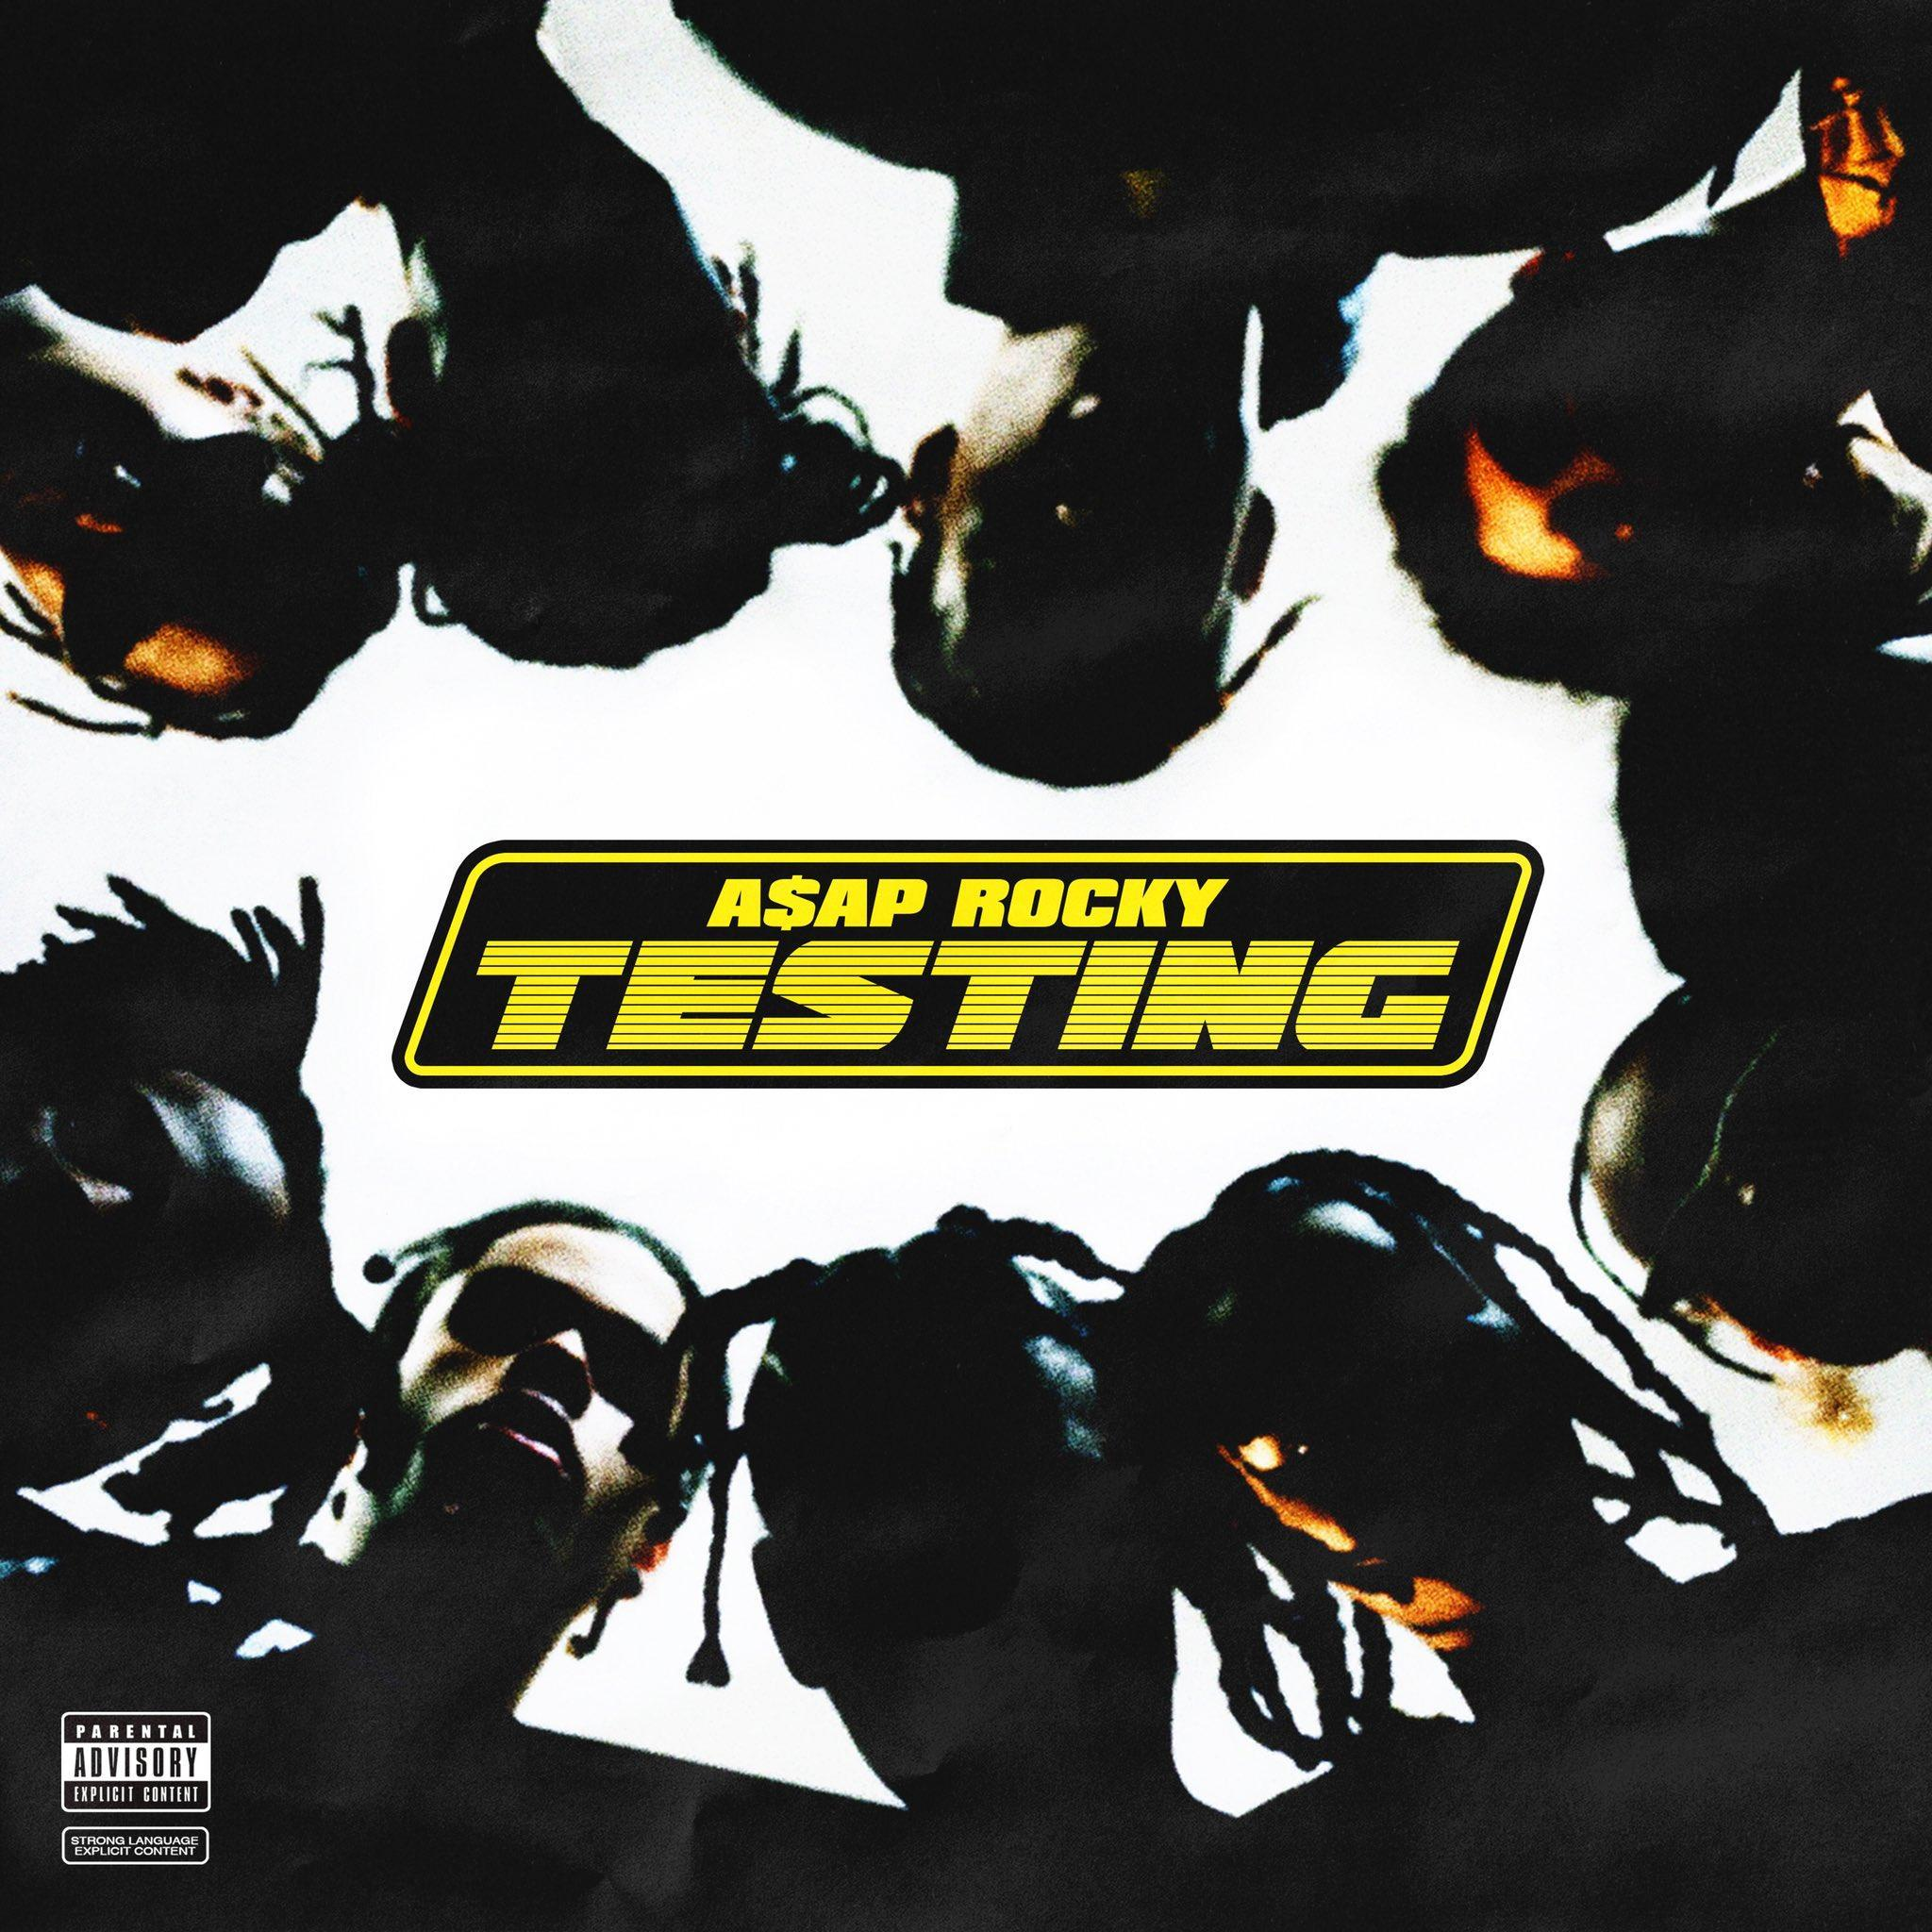 A$AP Rocky new album review: First listen impressions of